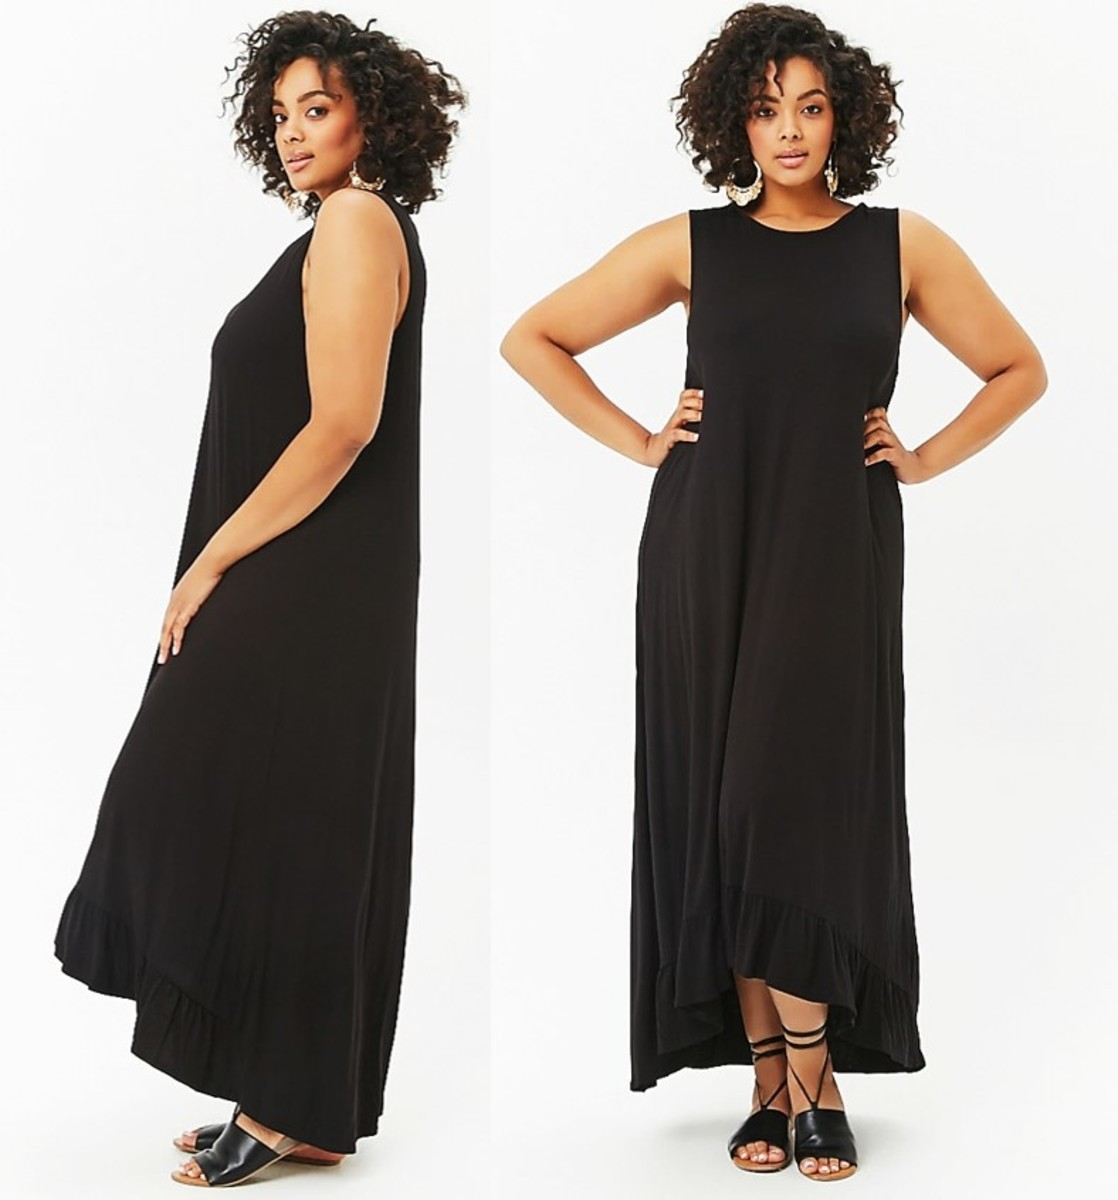 knit sleeveless maxi dress with a scoop neckline and a high-low flounce hem